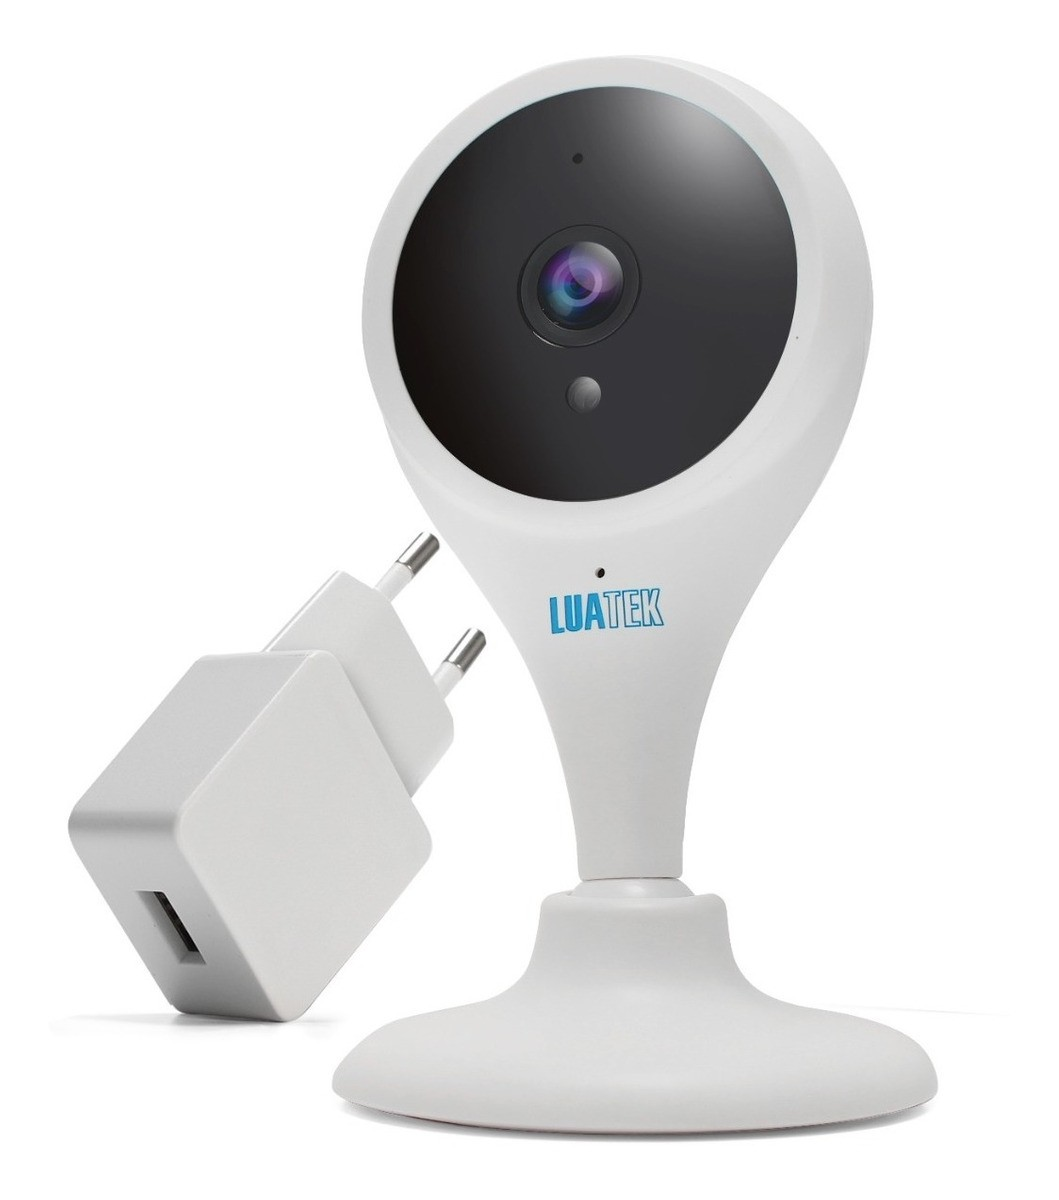 CAMERA IP WIFI COM COLORIDA A NOITE LSC620 LUATEK